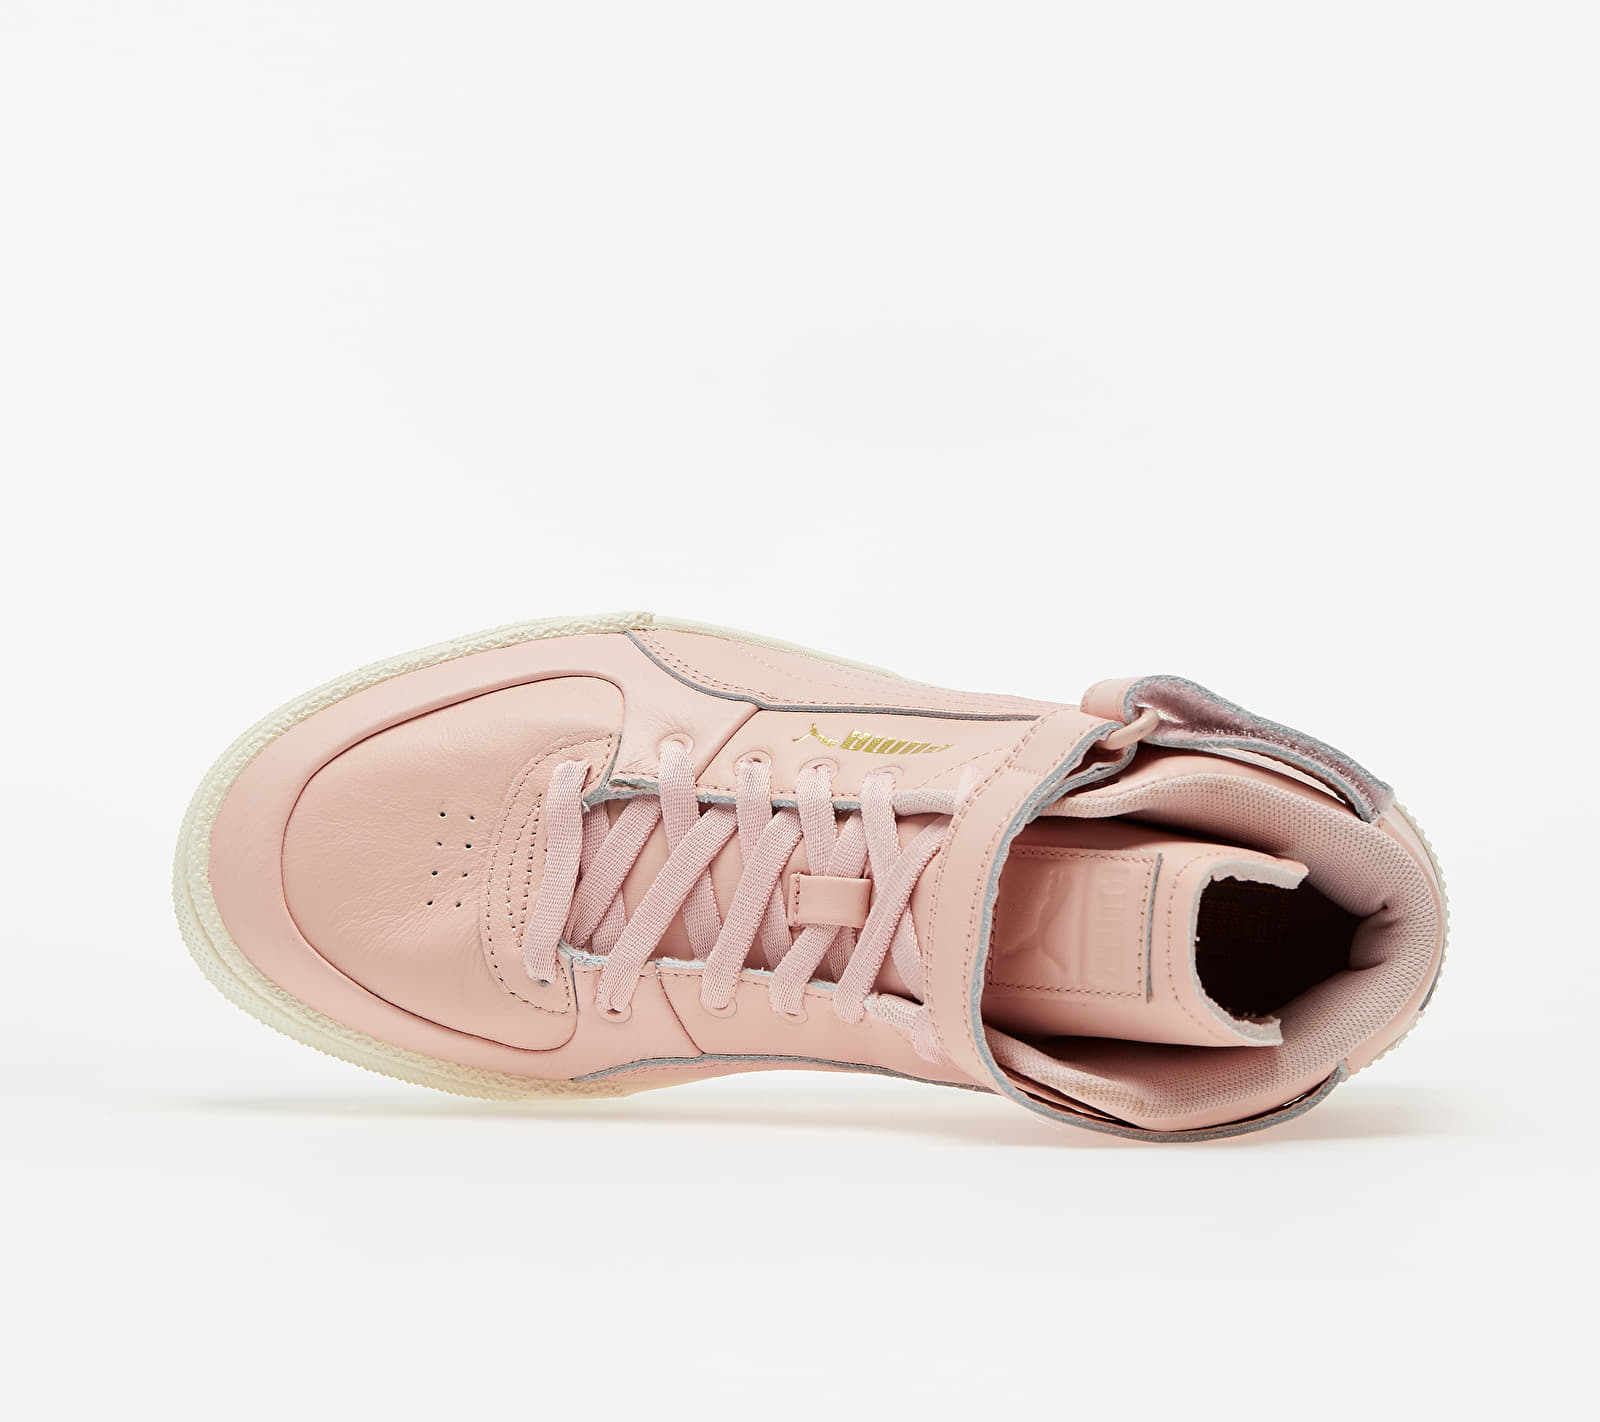 Puma Cali Sport Top Warm Up Wn s Peachskin-Marshmallow, Gray